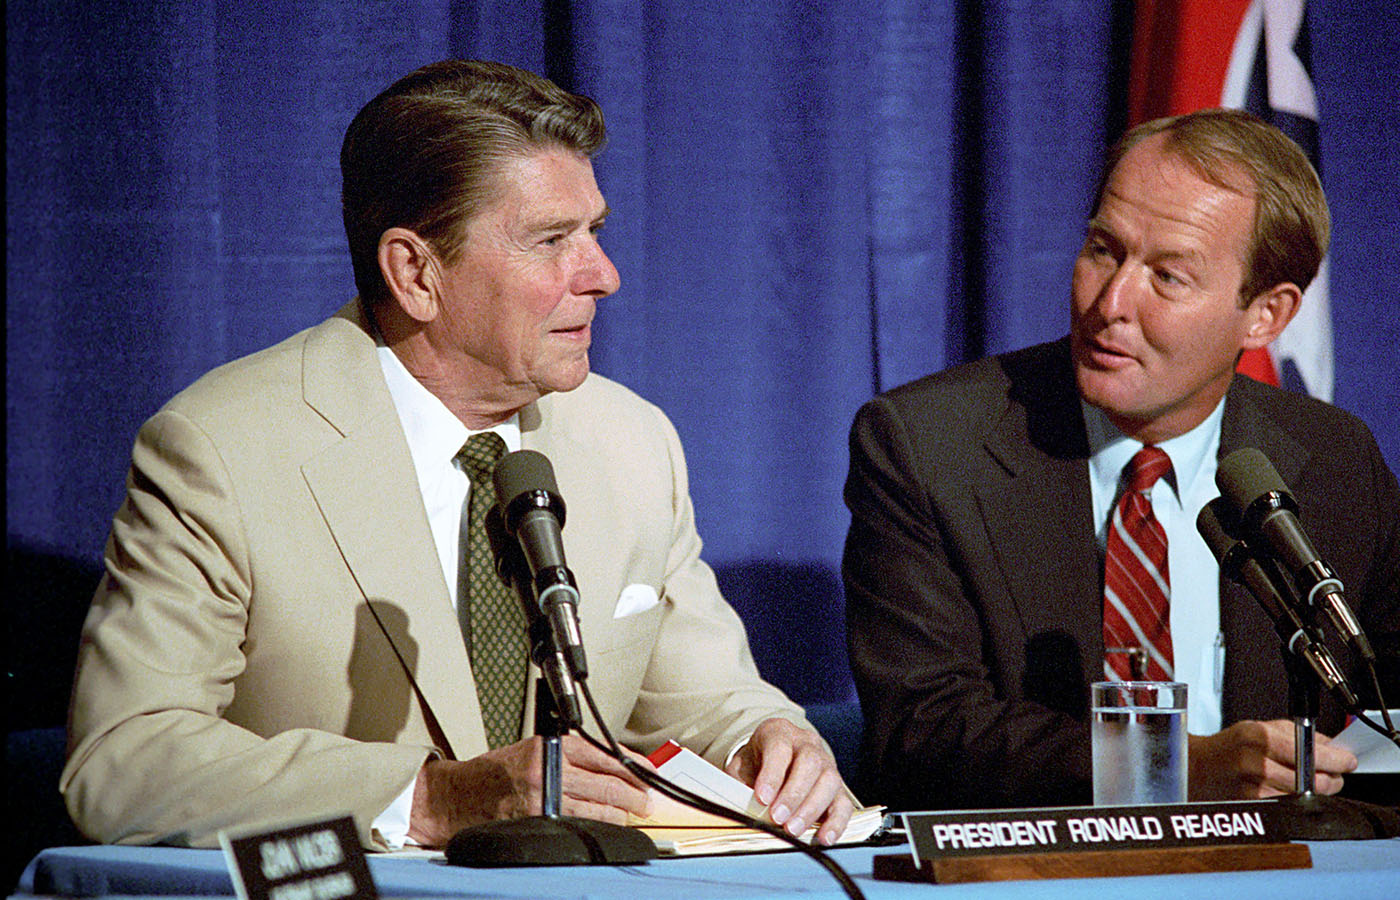 While governor of Tennessee, Alexander appears with President Ronald Reagan at Farragut High School in Knoxville to discuss the report released by the National Commission on Excellence in Education, June 14, 1983.